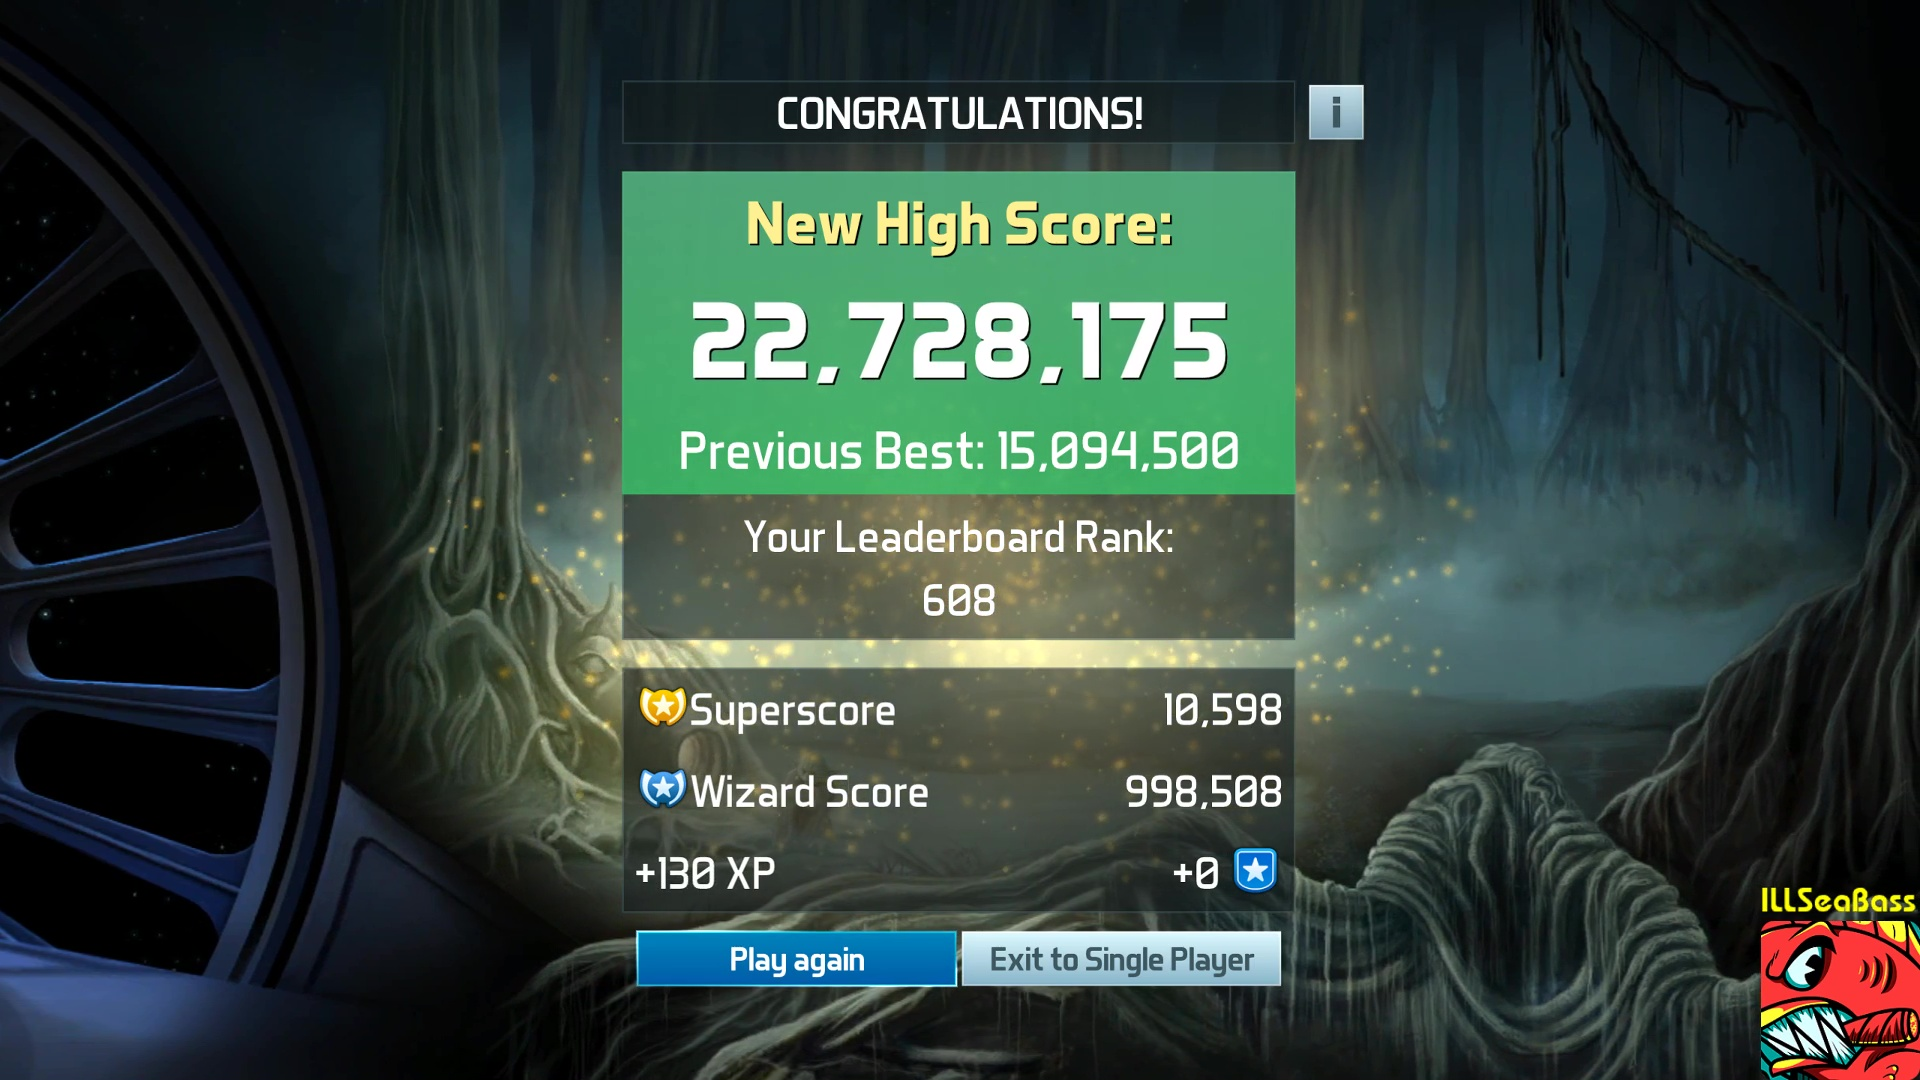 ILLSeaBass: Pinball FX3: Star Wars Pinball: Masters of the Force (PC) 22,728,175 points on 2017-12-29 23:21:20